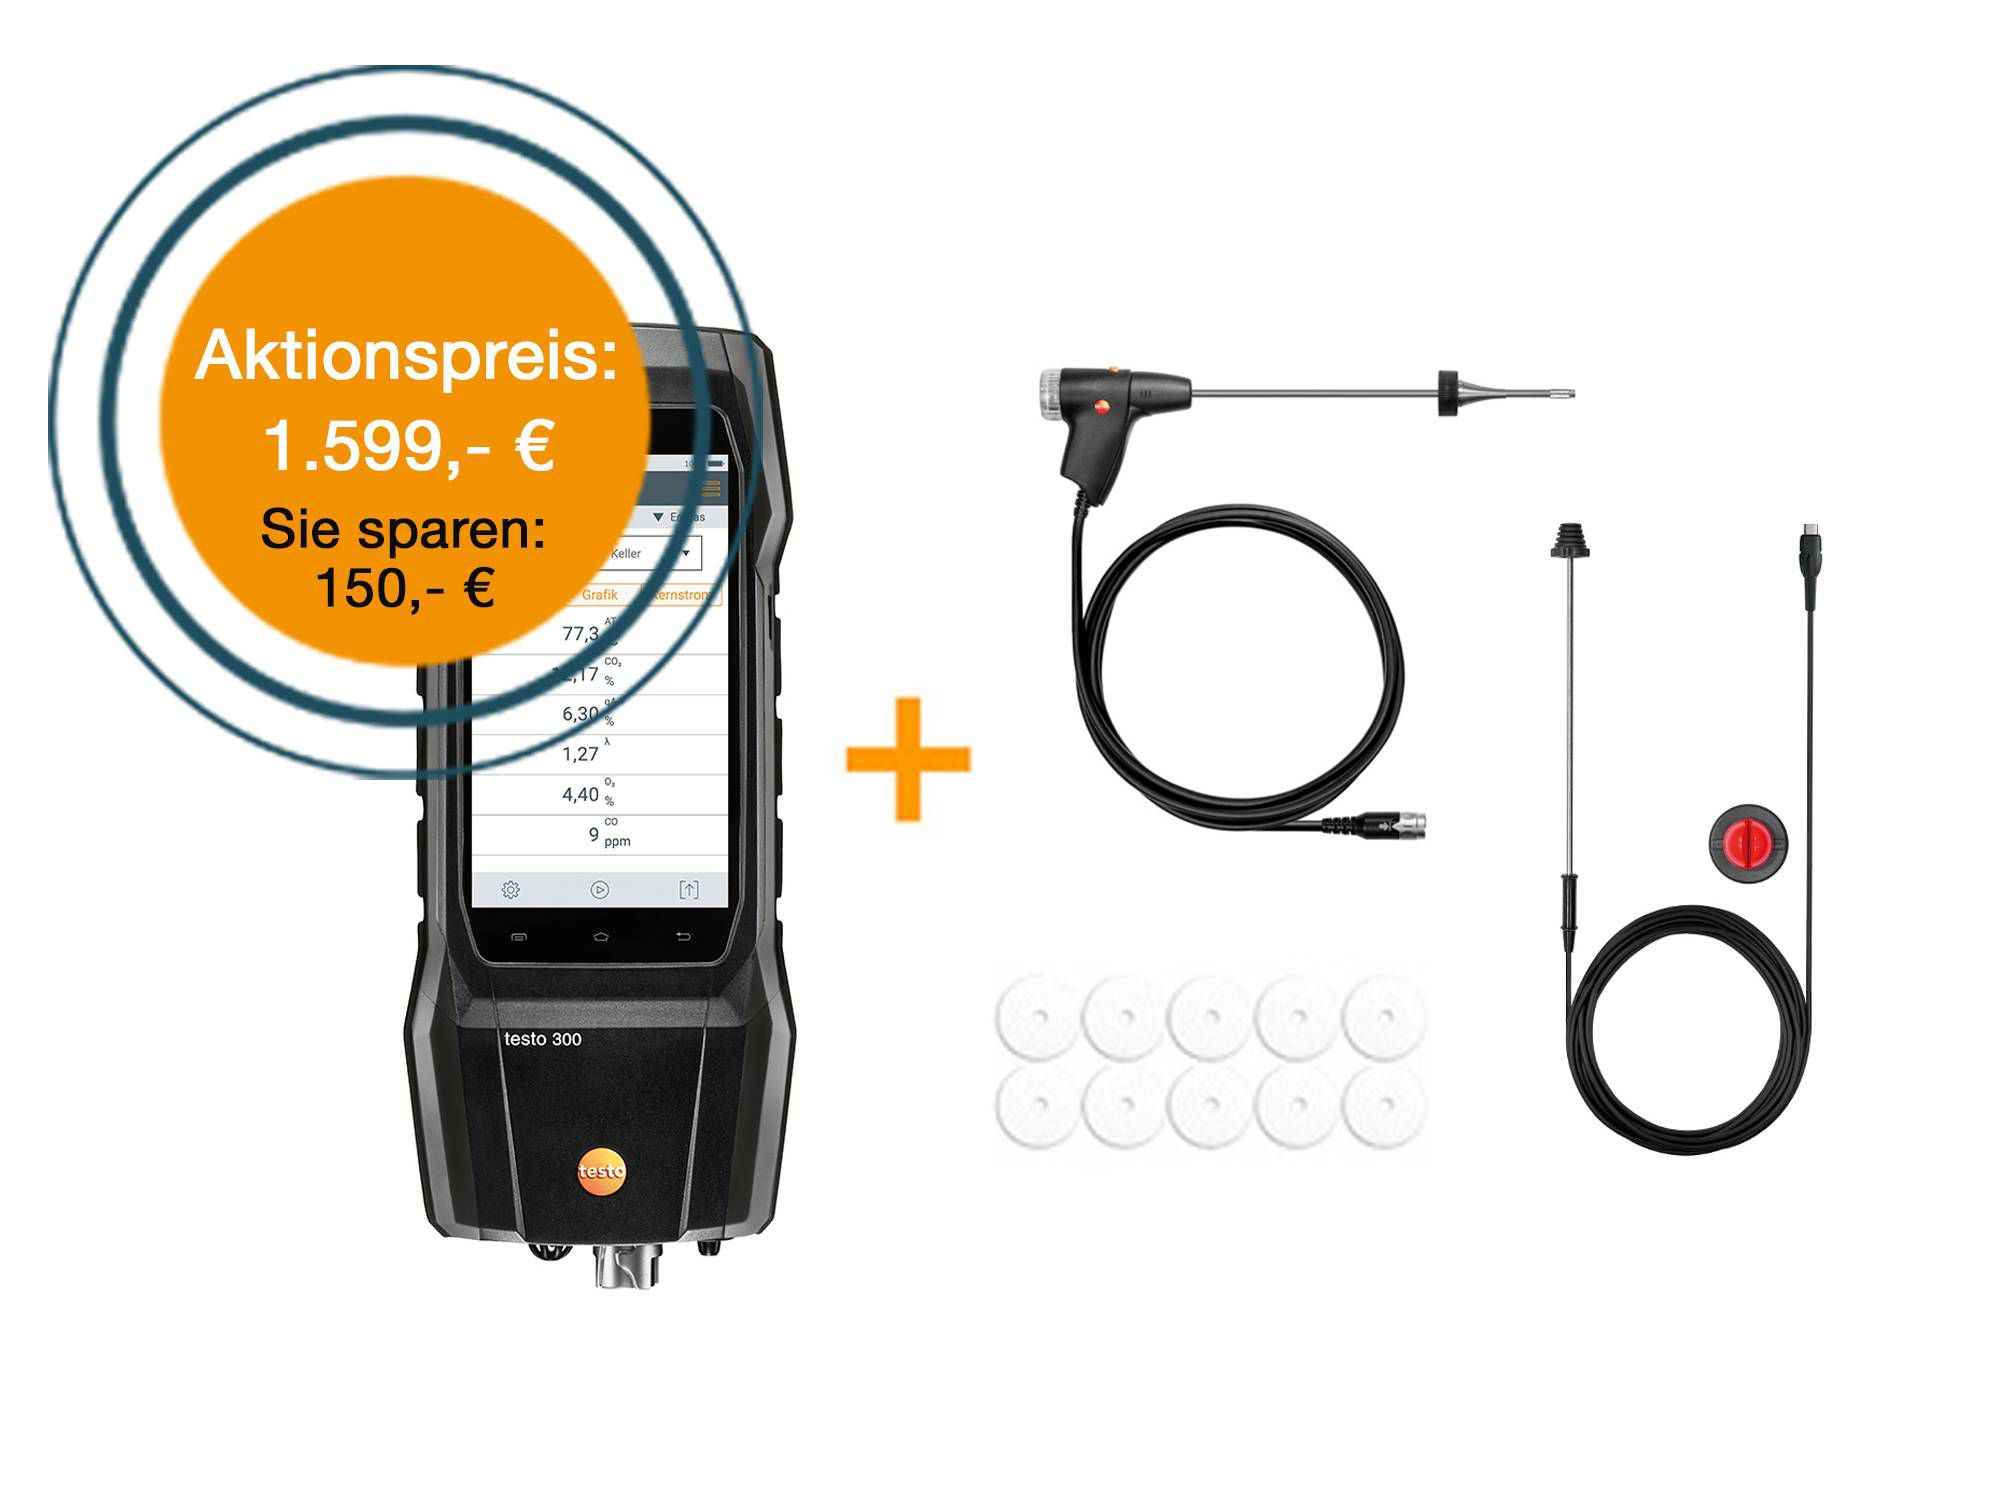 testo 300 SE Long Life Set zum Aktionspreis